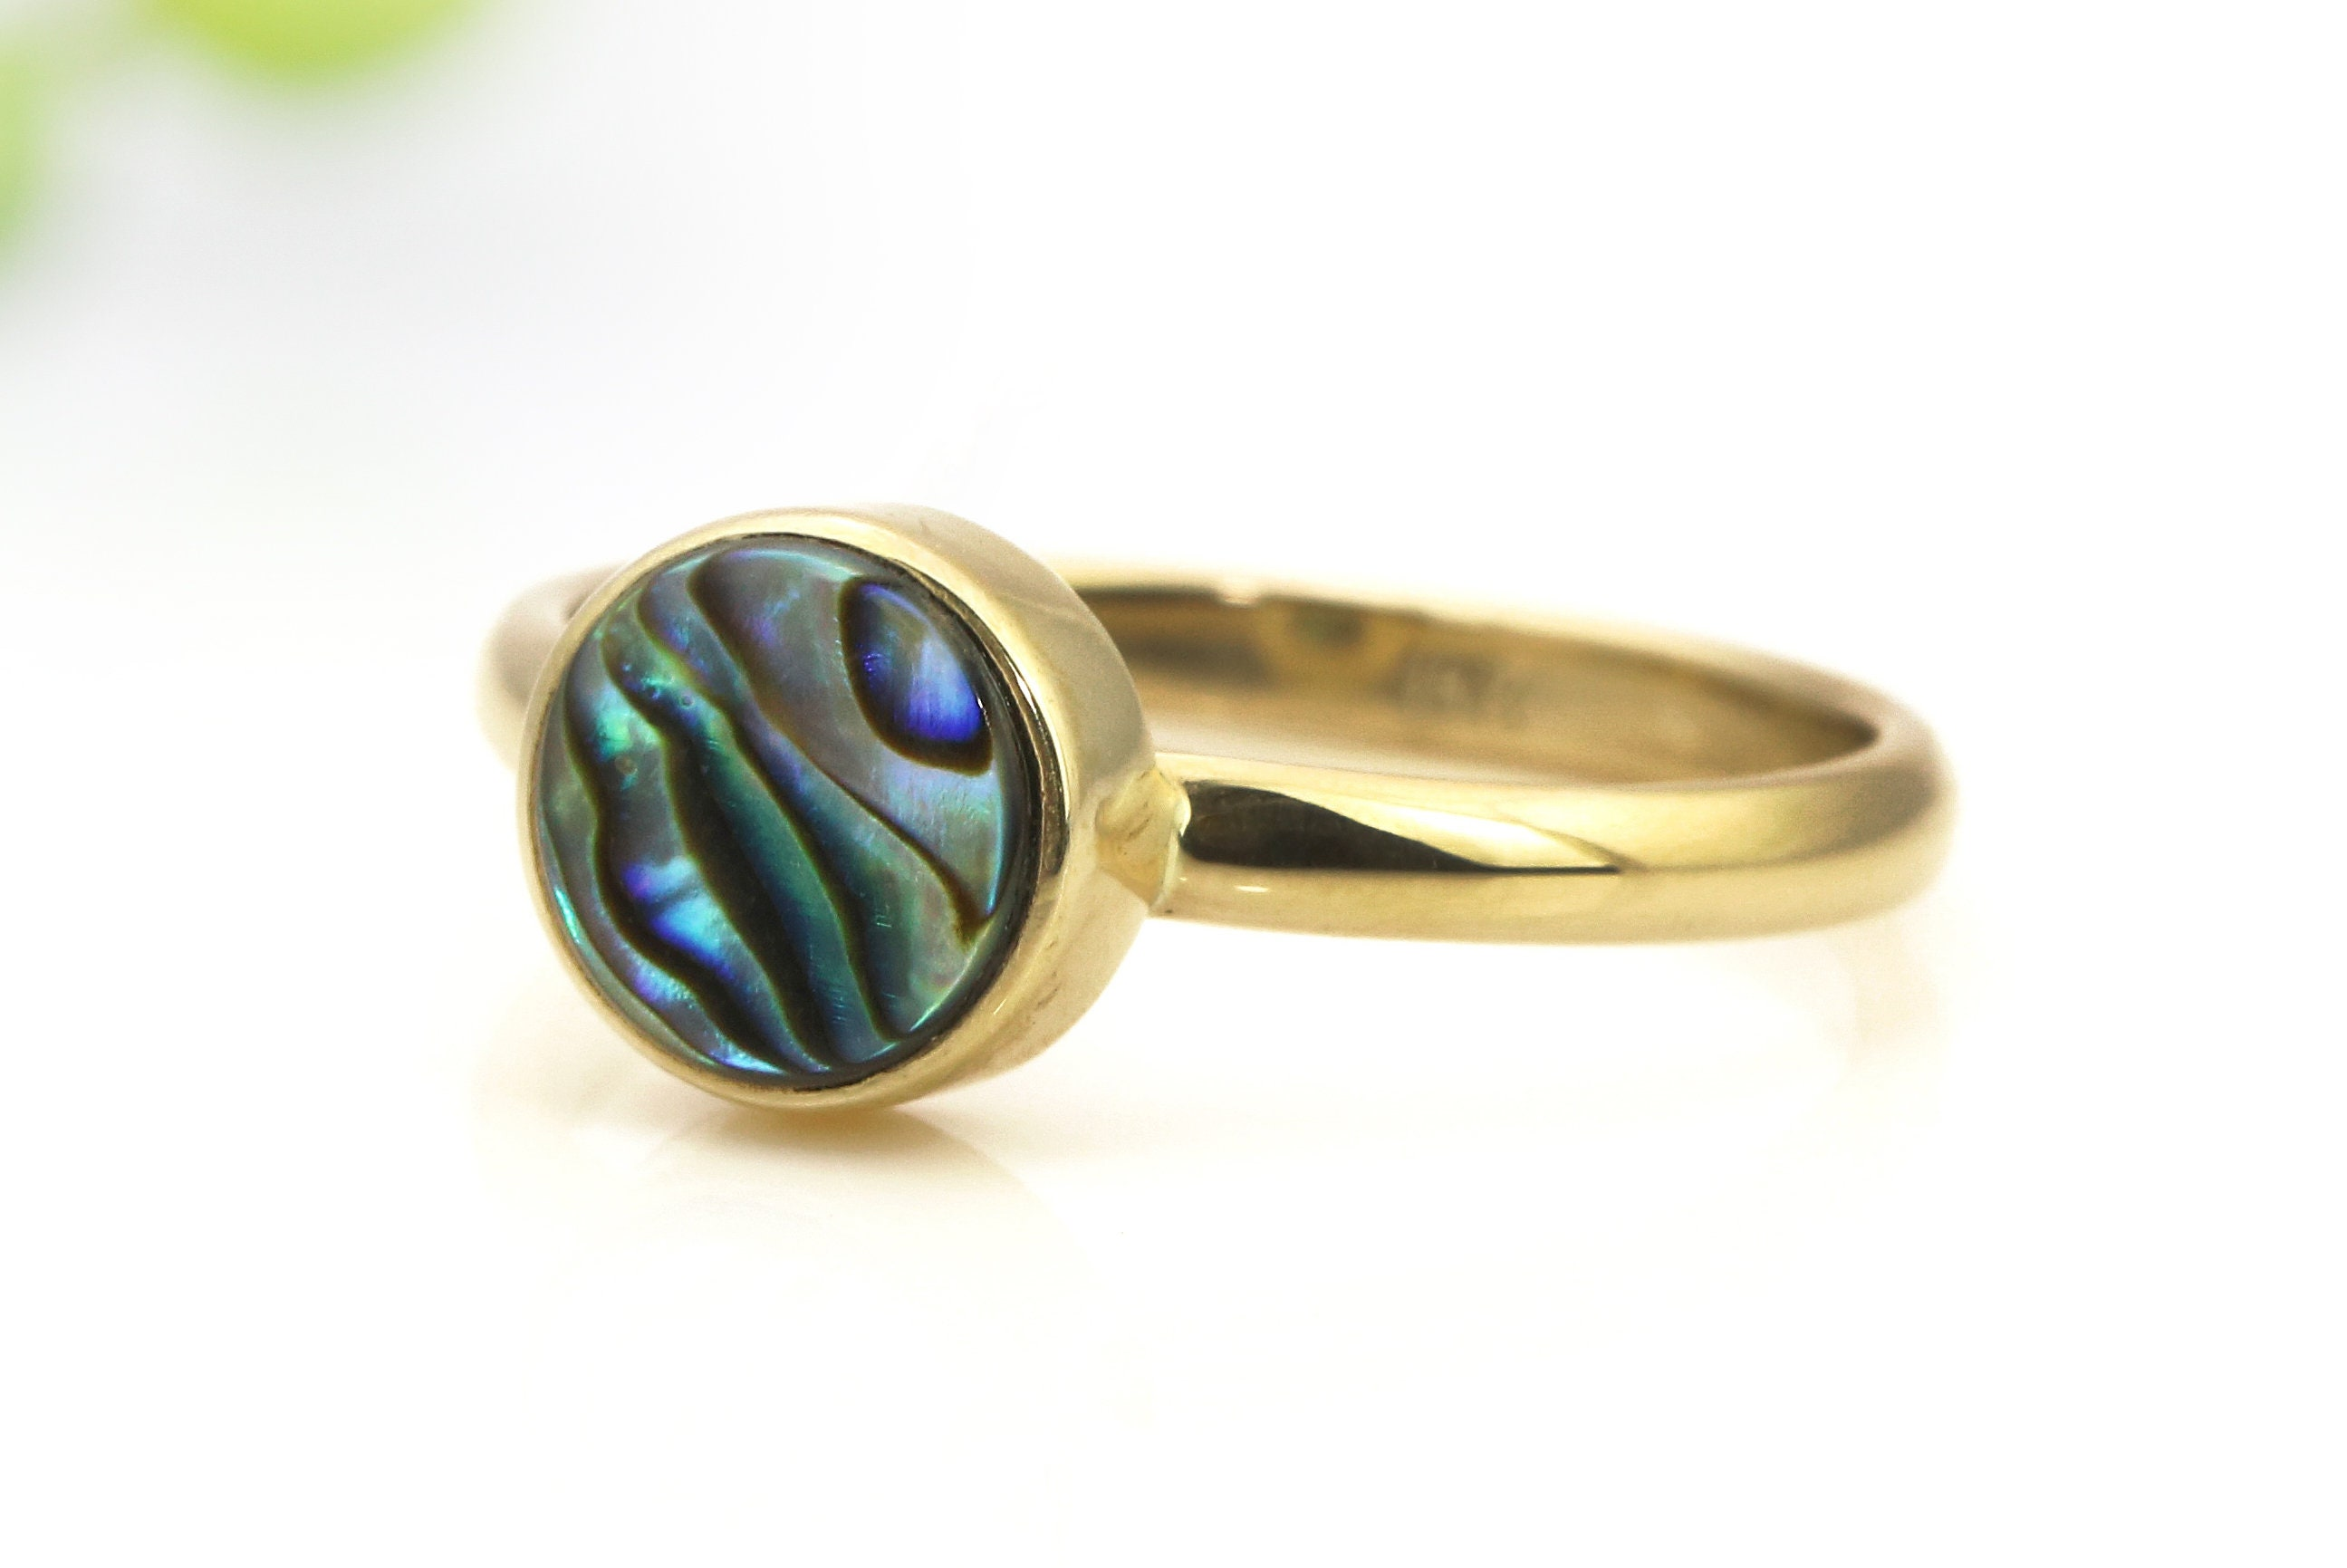 wedding abalone keevin hesuse ring shop silver acorn accessories small cimcc and rings with smacrnring